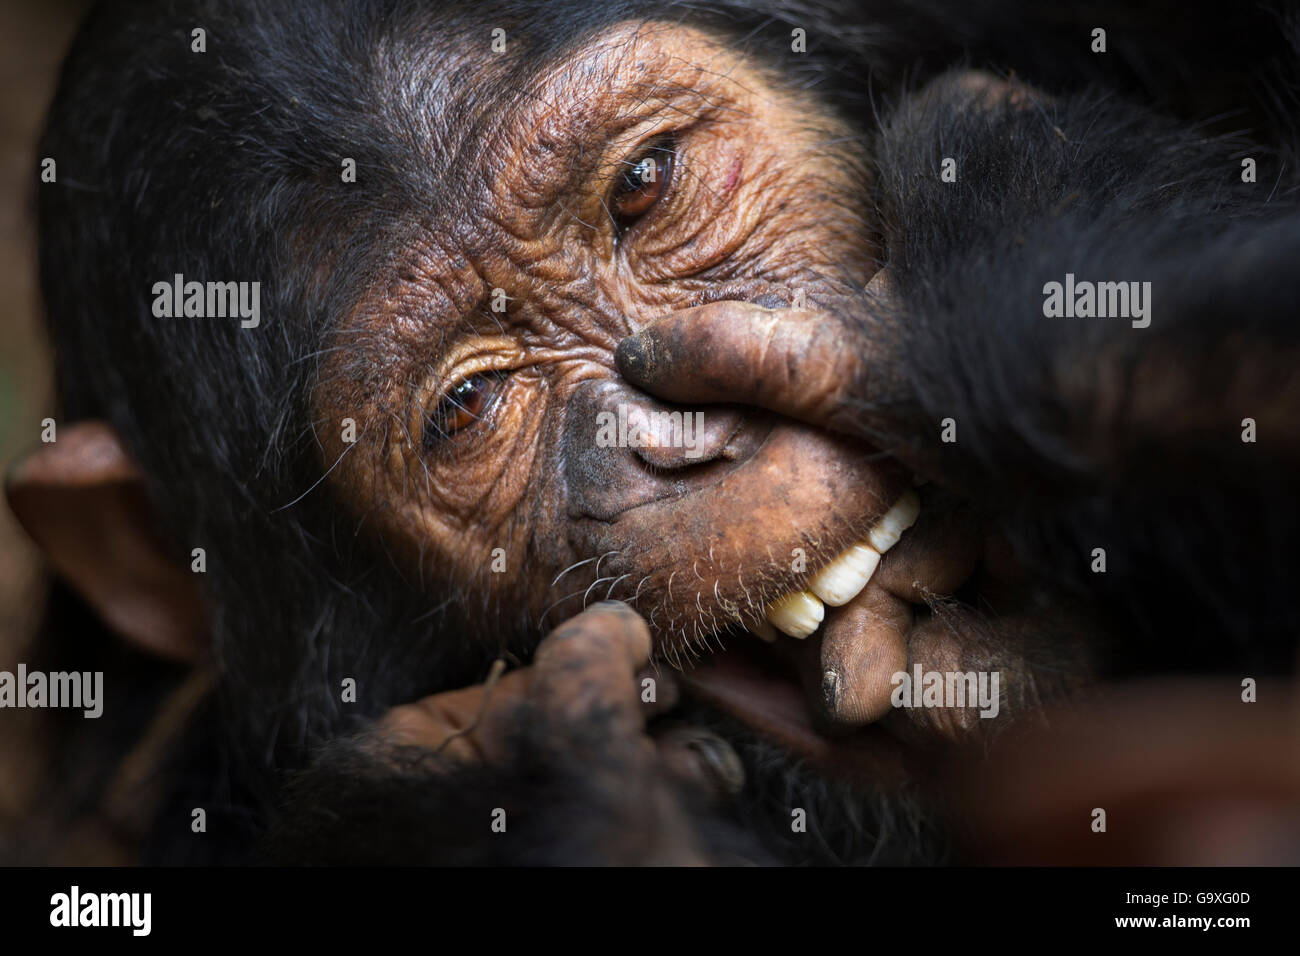 Eastern chimpanzee (Pan troglodytes schweinfurtheii) juvenile female 'Familia' aged 7 years playing with - Stock Image